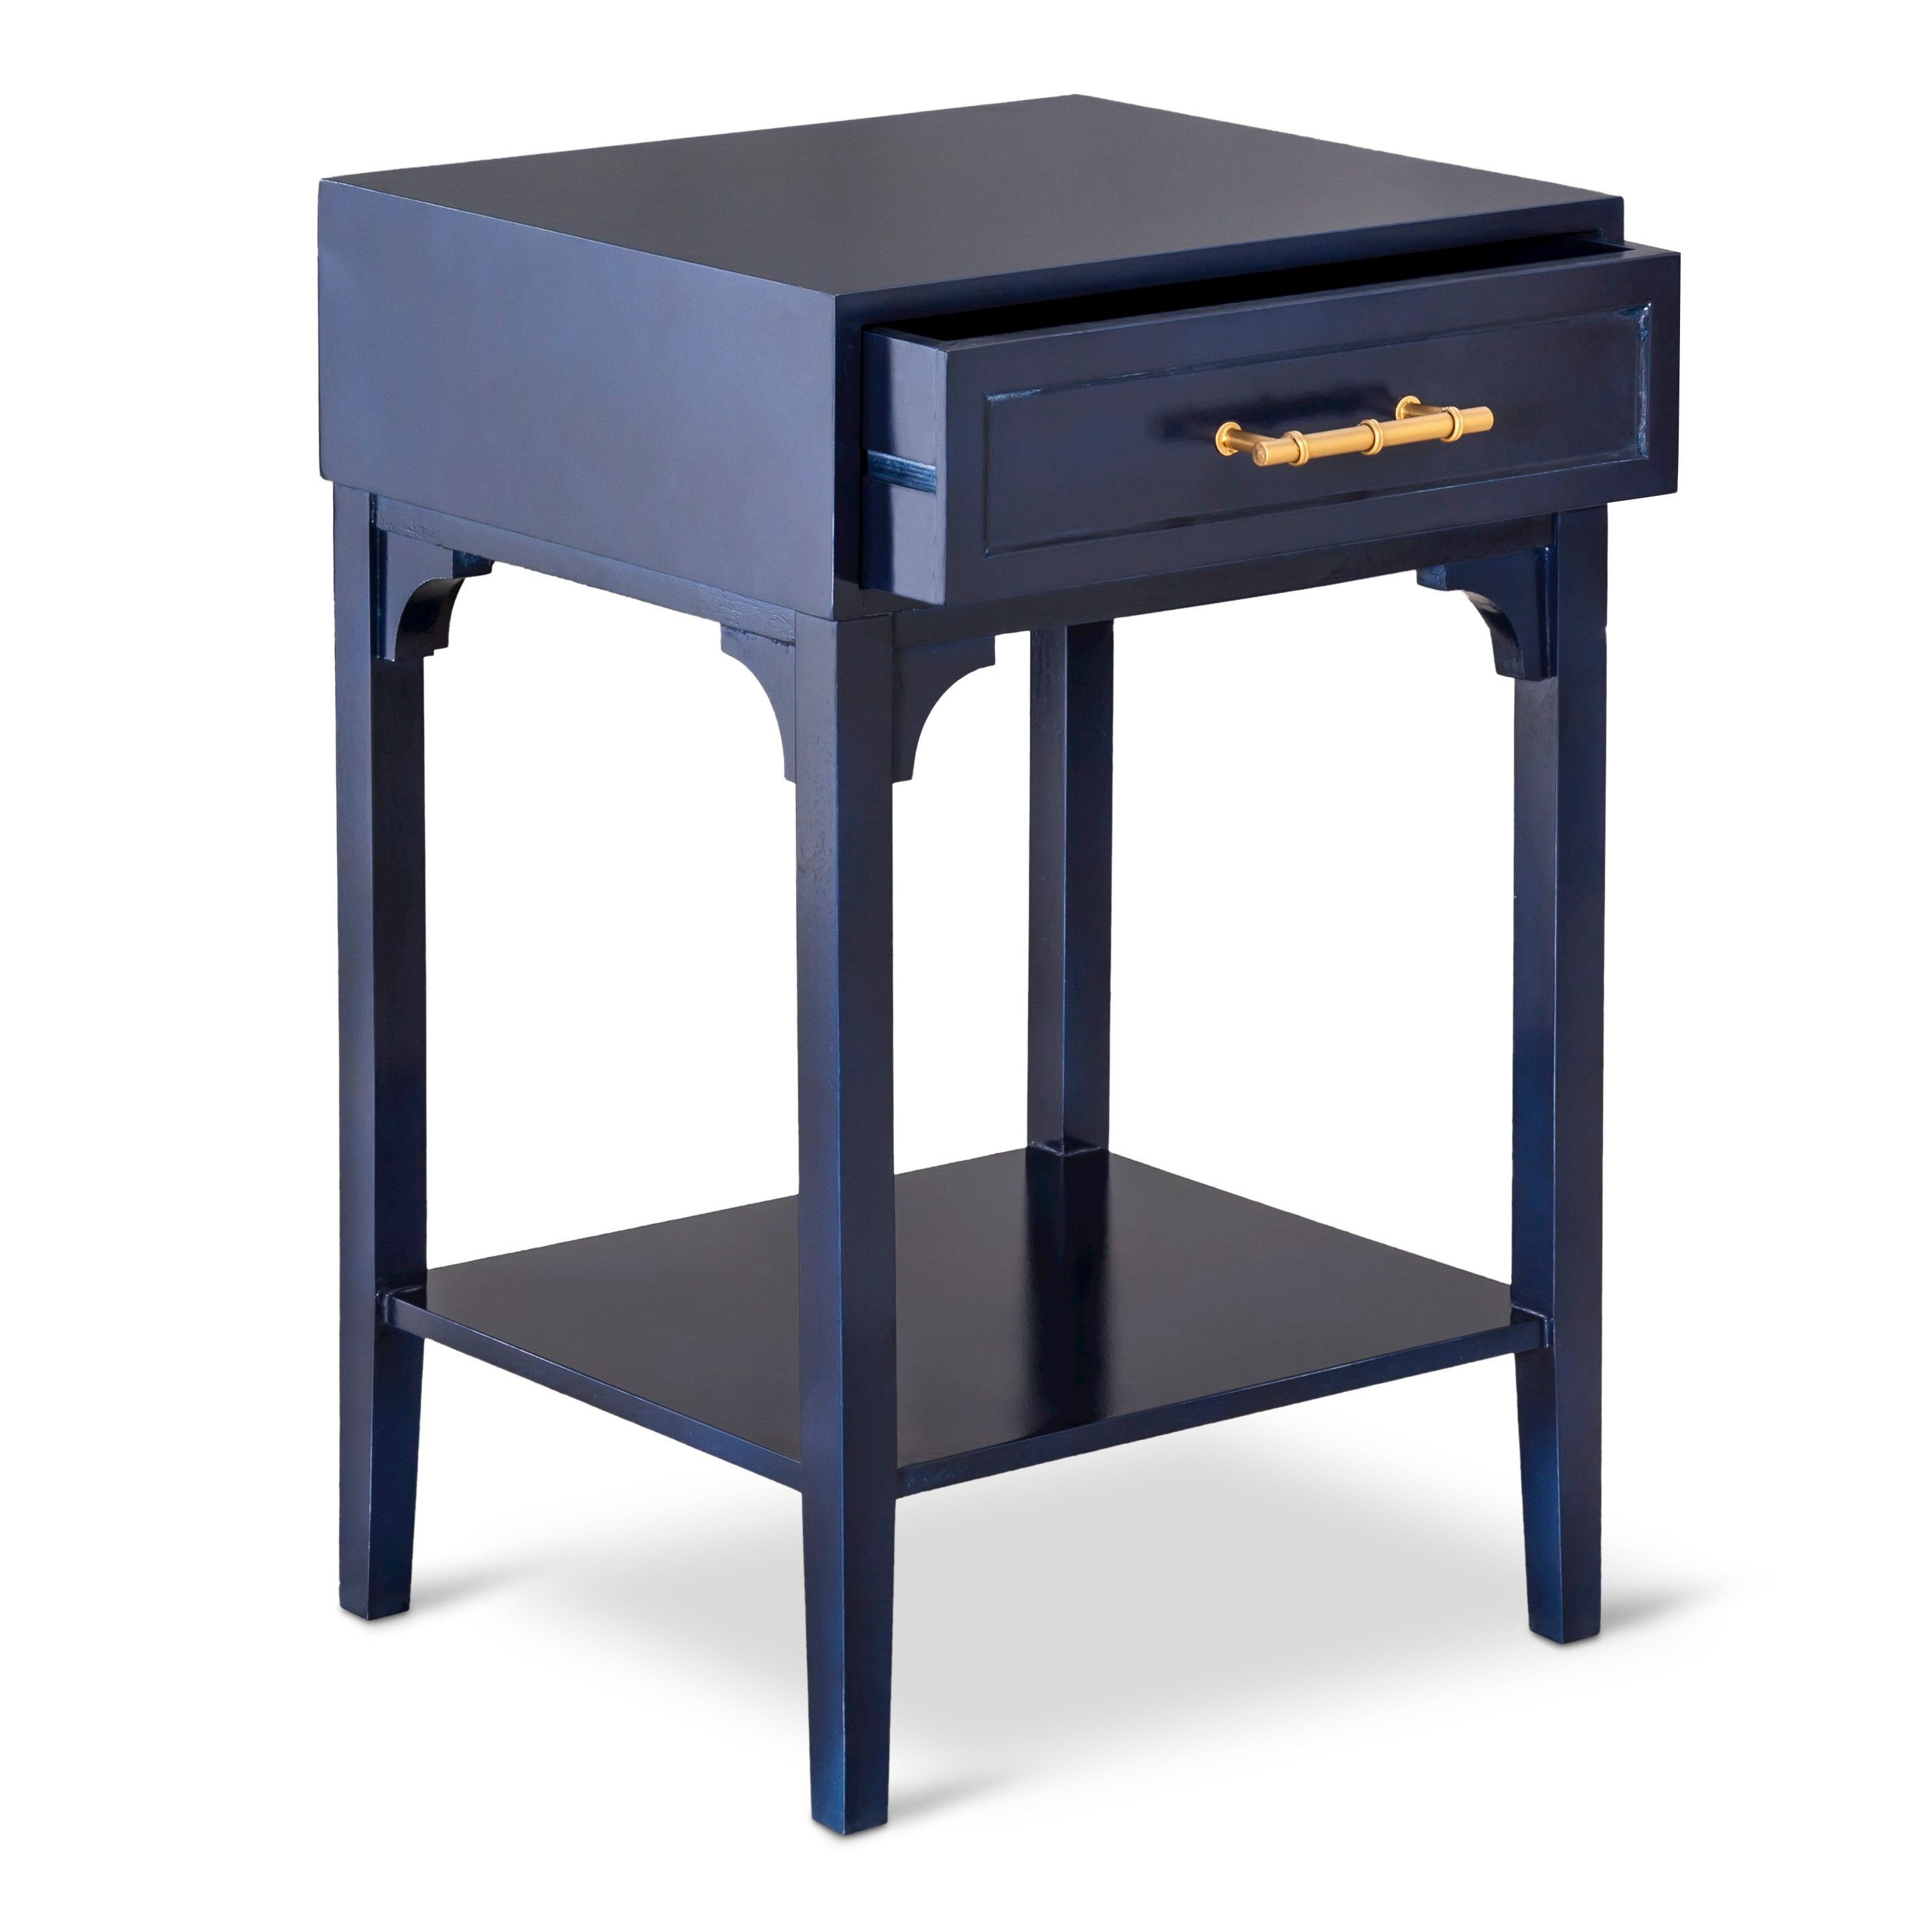 threshold accent table with bamboo motif handle target loft drawer metal furniture legs modern gold color coffee piece patio set small side shelves corner dining space living